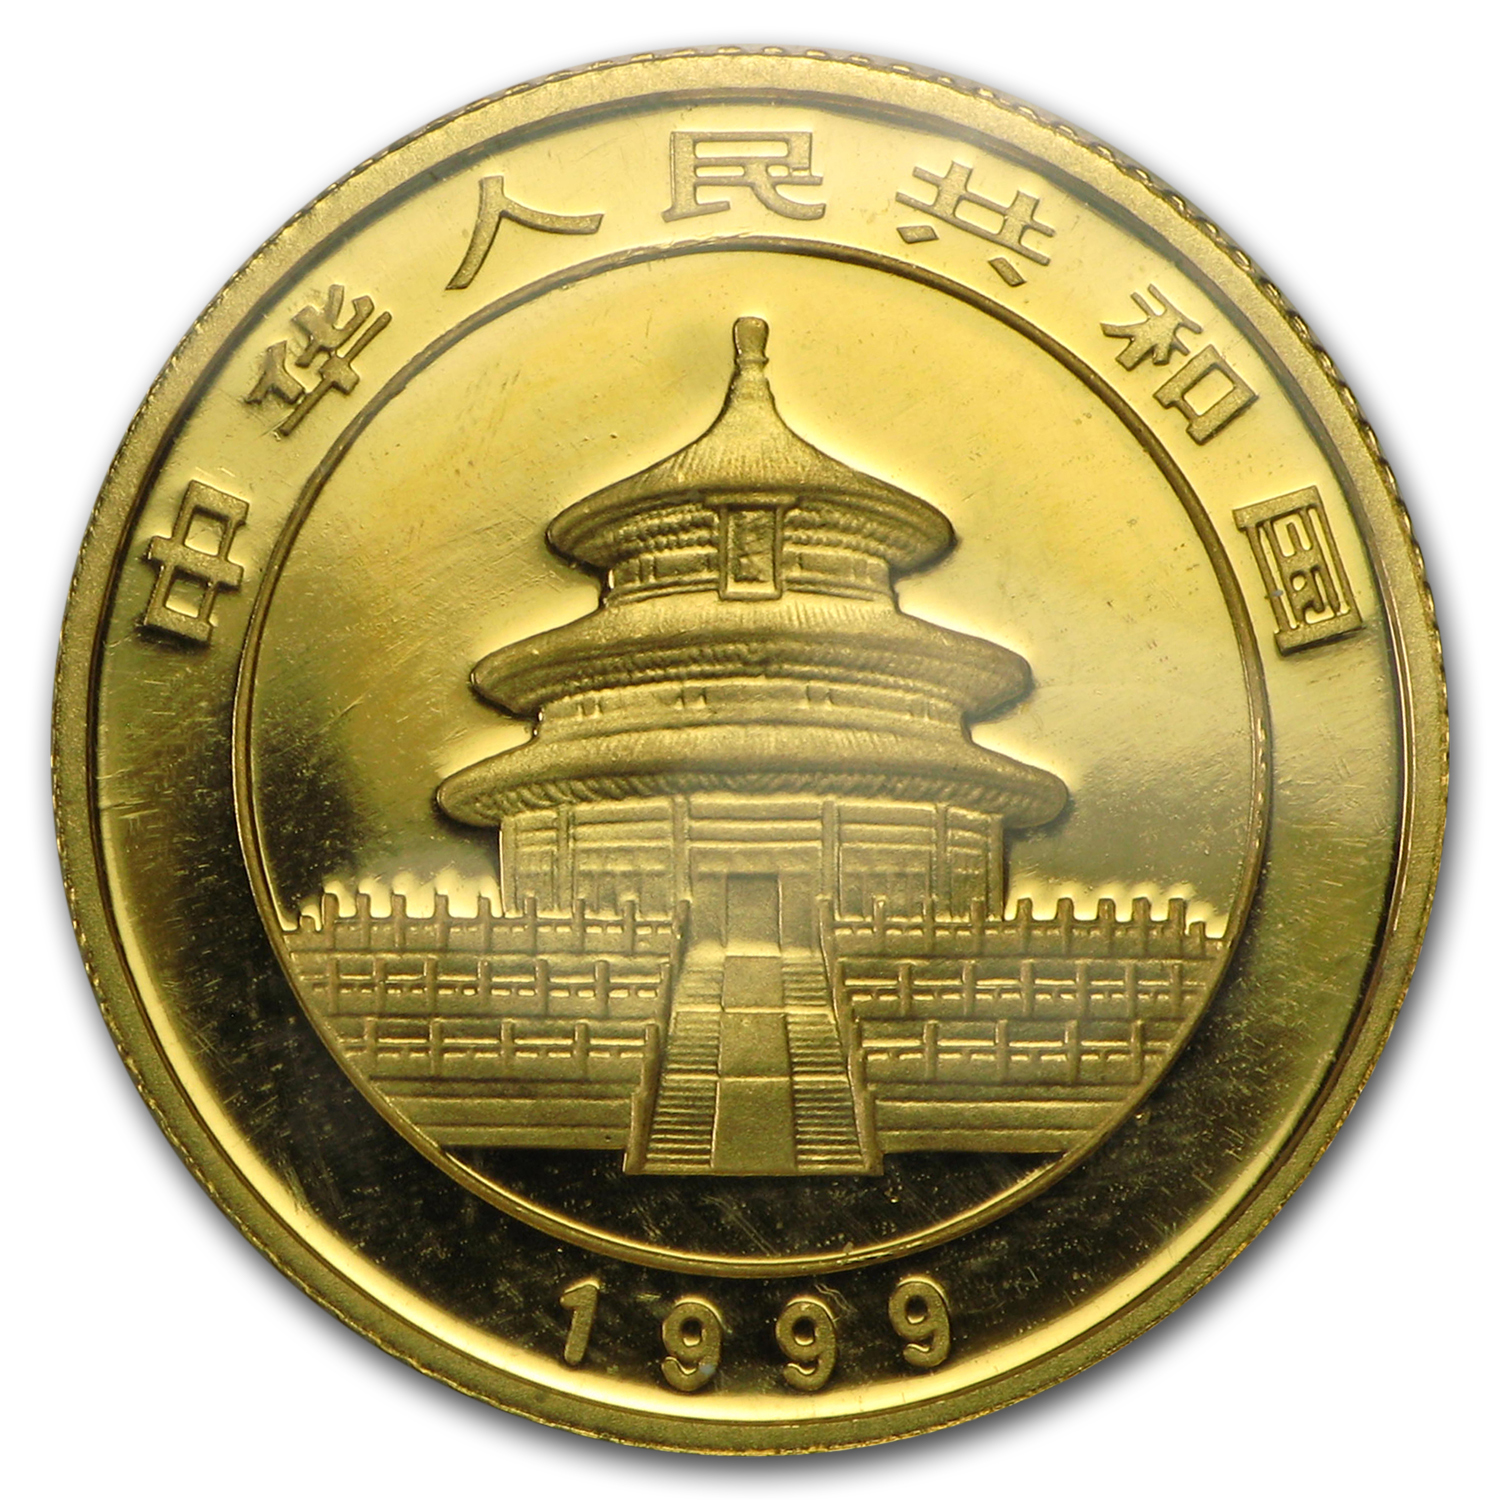 1999 China 1/10 oz Gold Panda Large Date/No Serif BU (Sealed)